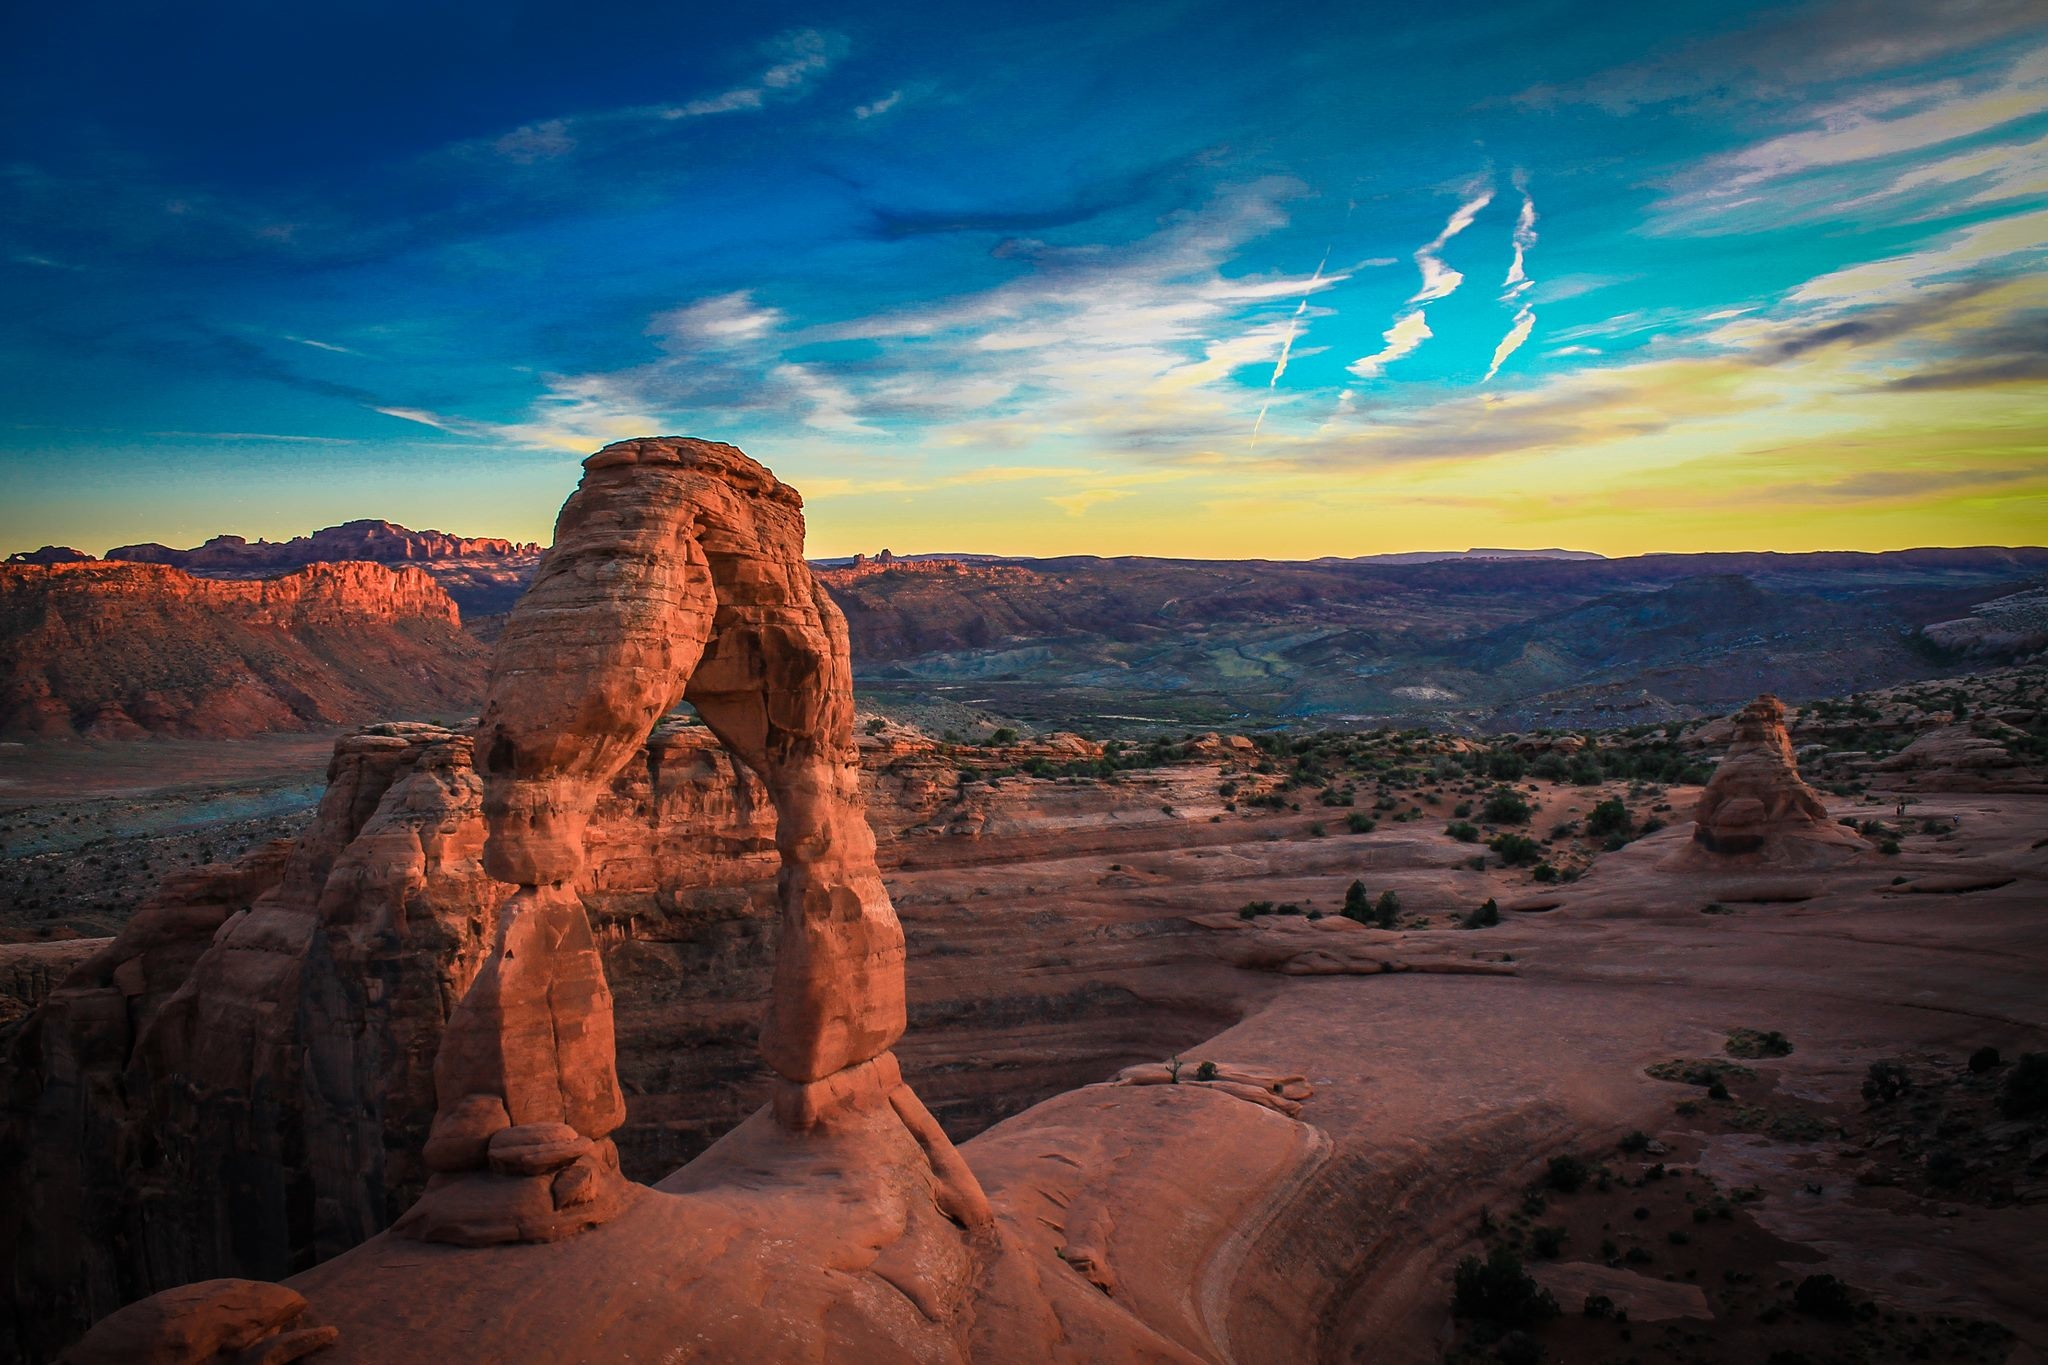 Delicate arch at sunset. The sky fades from indigo to turquoise to lemonade. The glowing sandstone is a peachy orange with shadows of raw sienna.